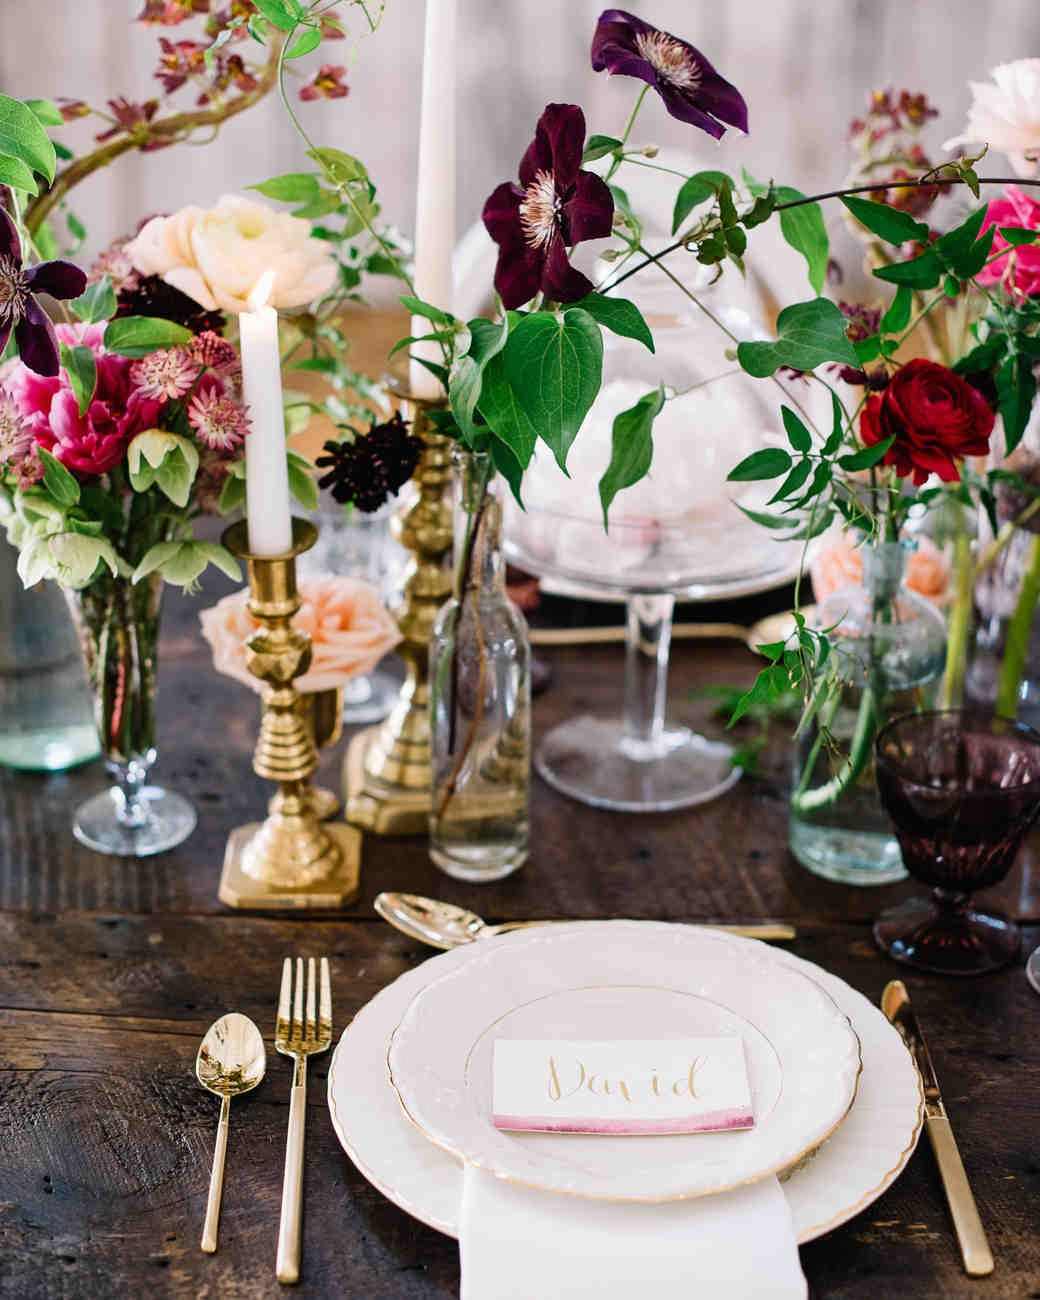 Www Wedding Flowers And Reception Ideas Com: Romantic, Deep-Hued Cluster Centerpieces